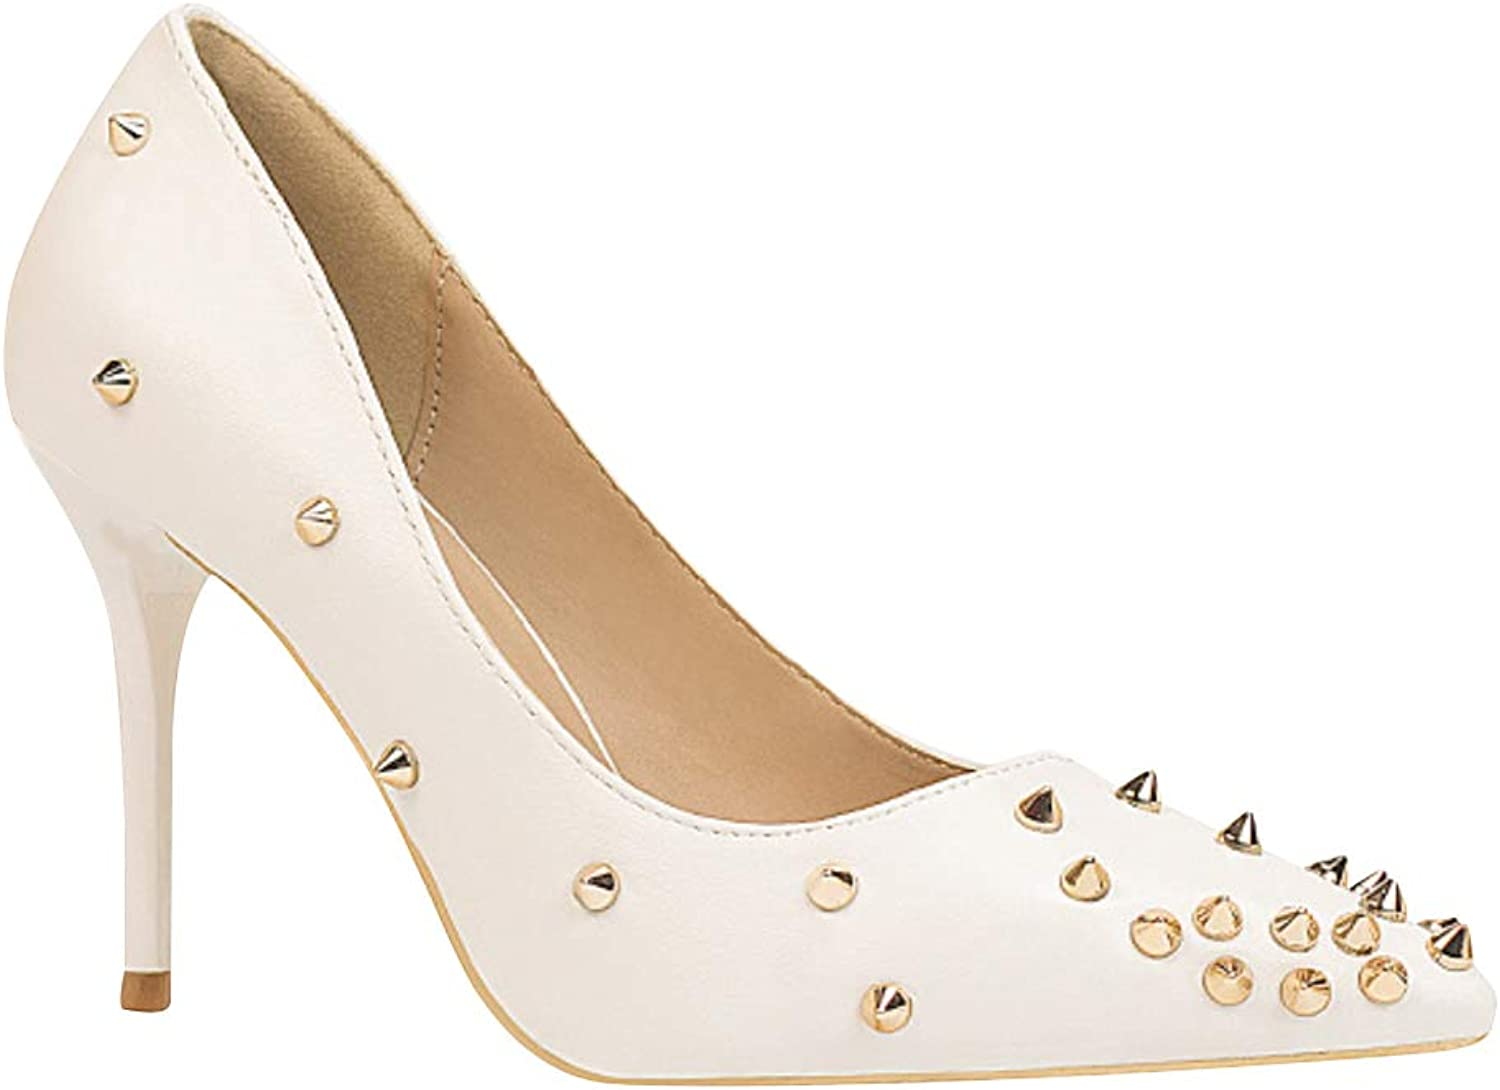 Uirend Women Pumps shoes - Fashion Stiletto Pointed 10cm Slim High Heels Closed Toe Slip On Rivet Studded Dress Wedding Party Court shoes